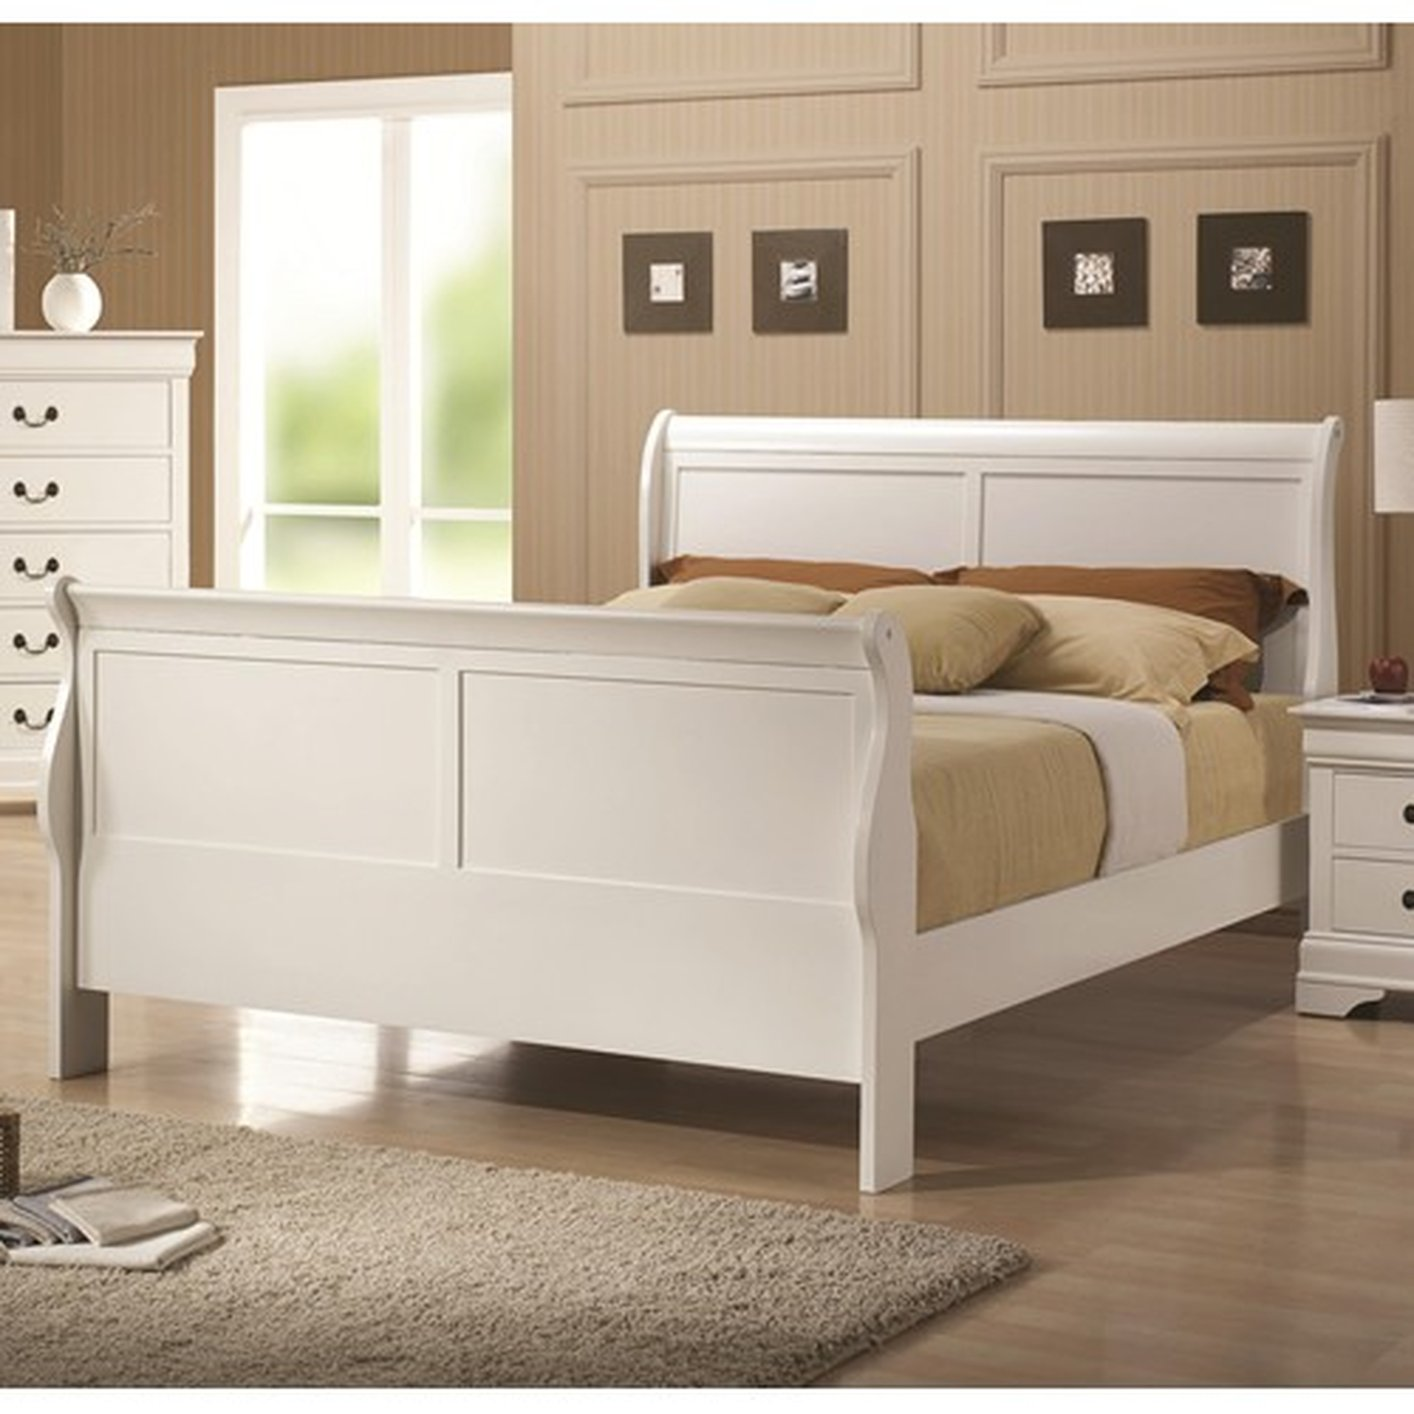 Coaster 204691f white full size wood bed steal a sofa for Bedroom furniture 90036